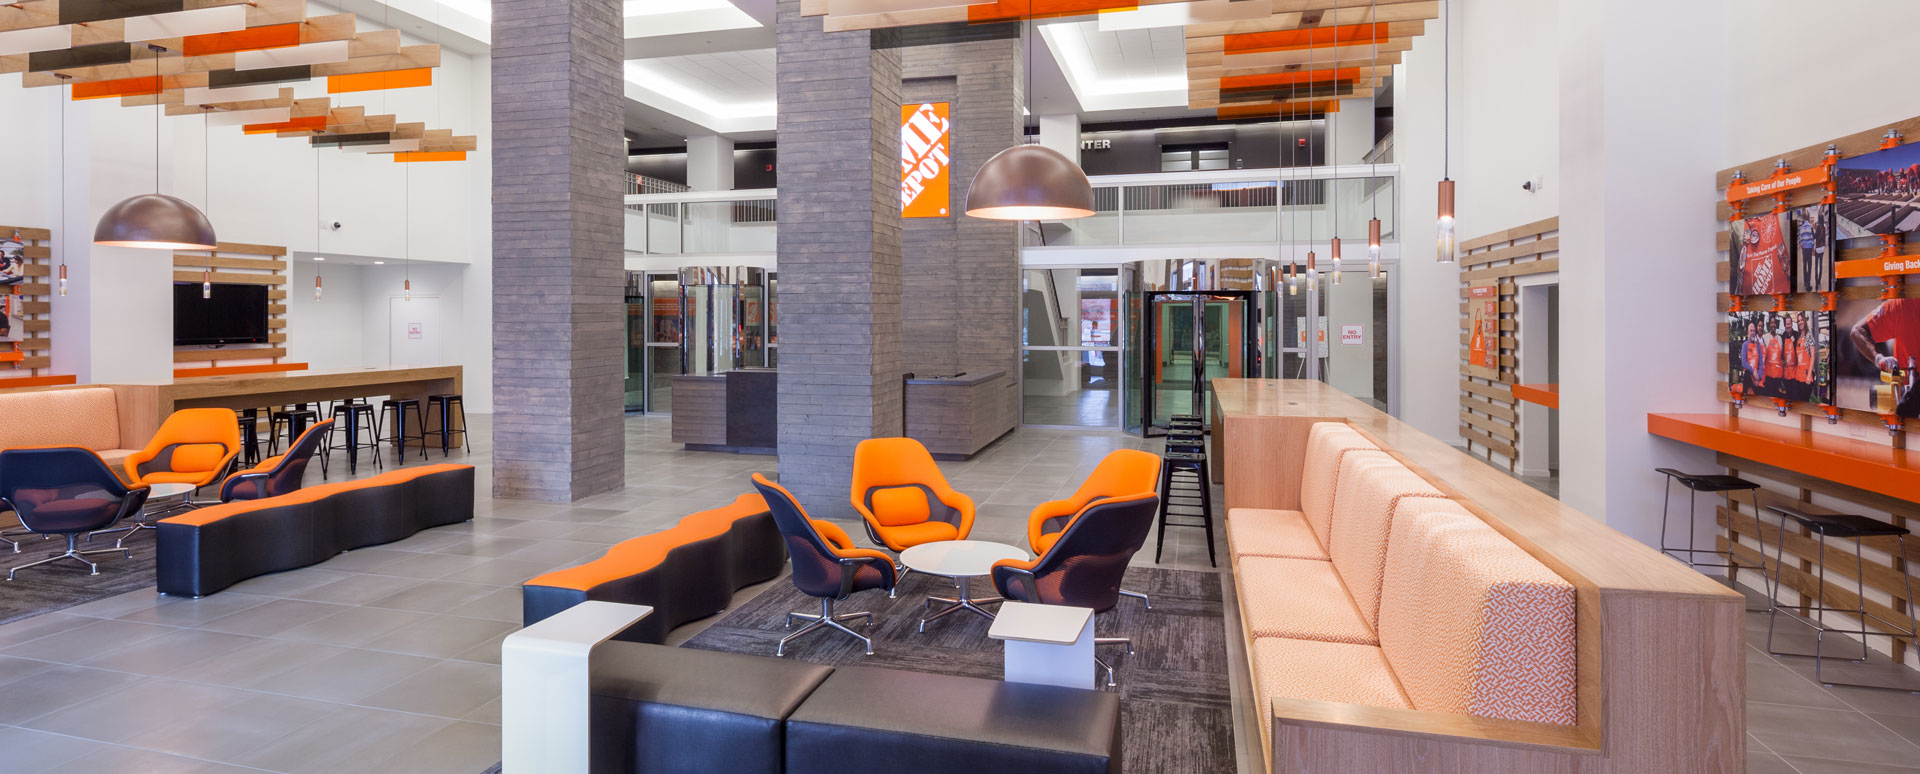 Home Depot Lobby Renovation 2